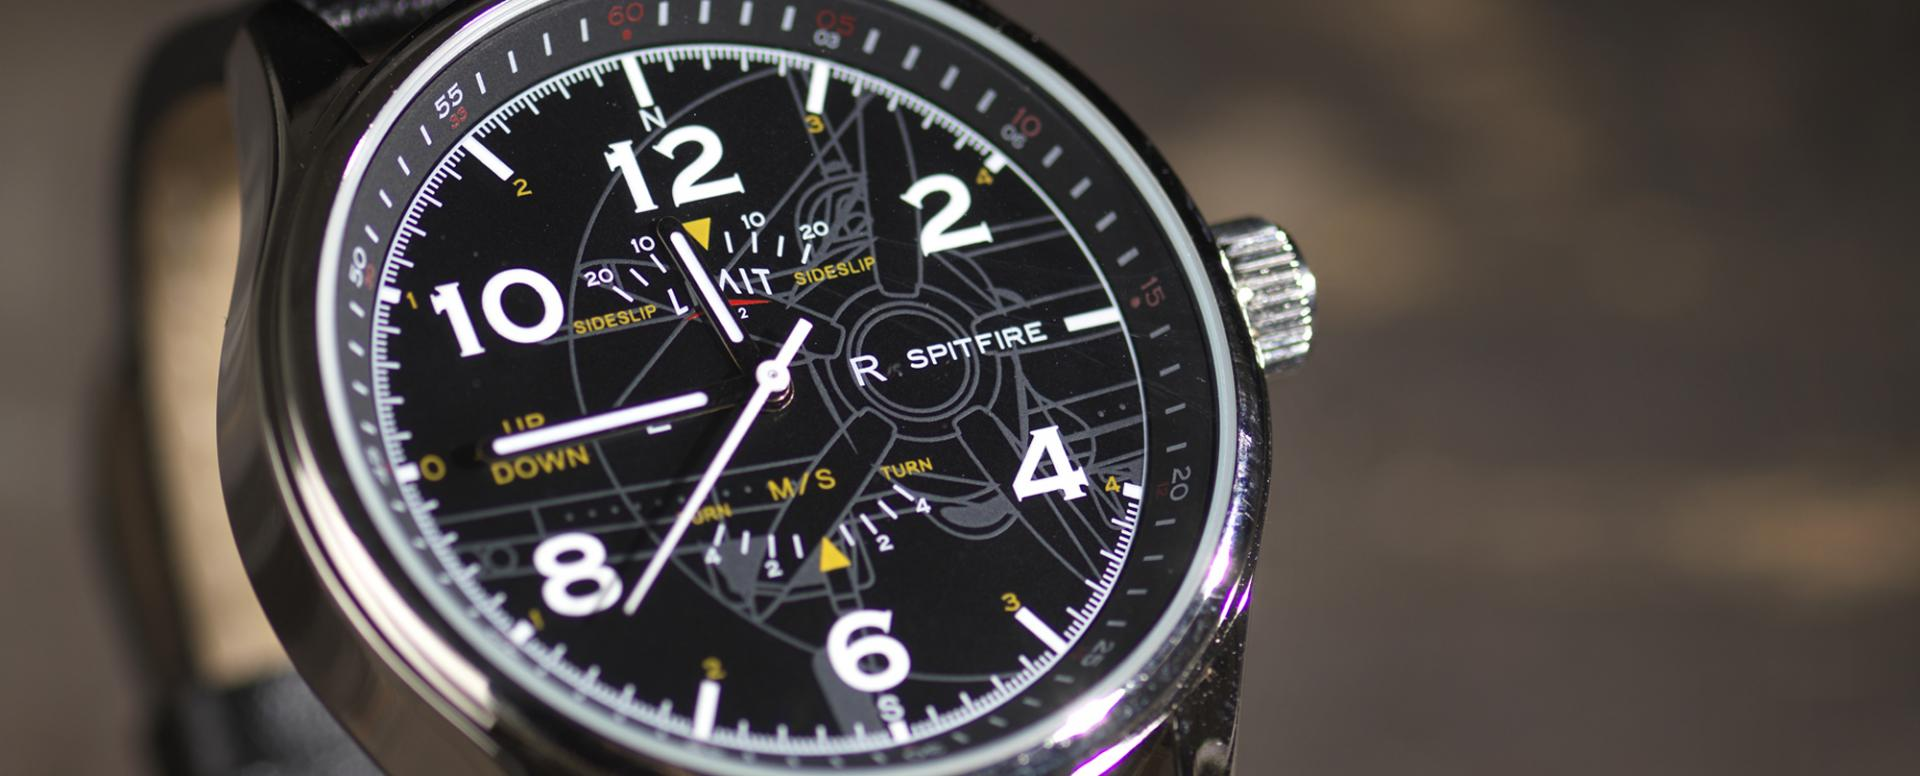 A watch design inspired by the Spitfire